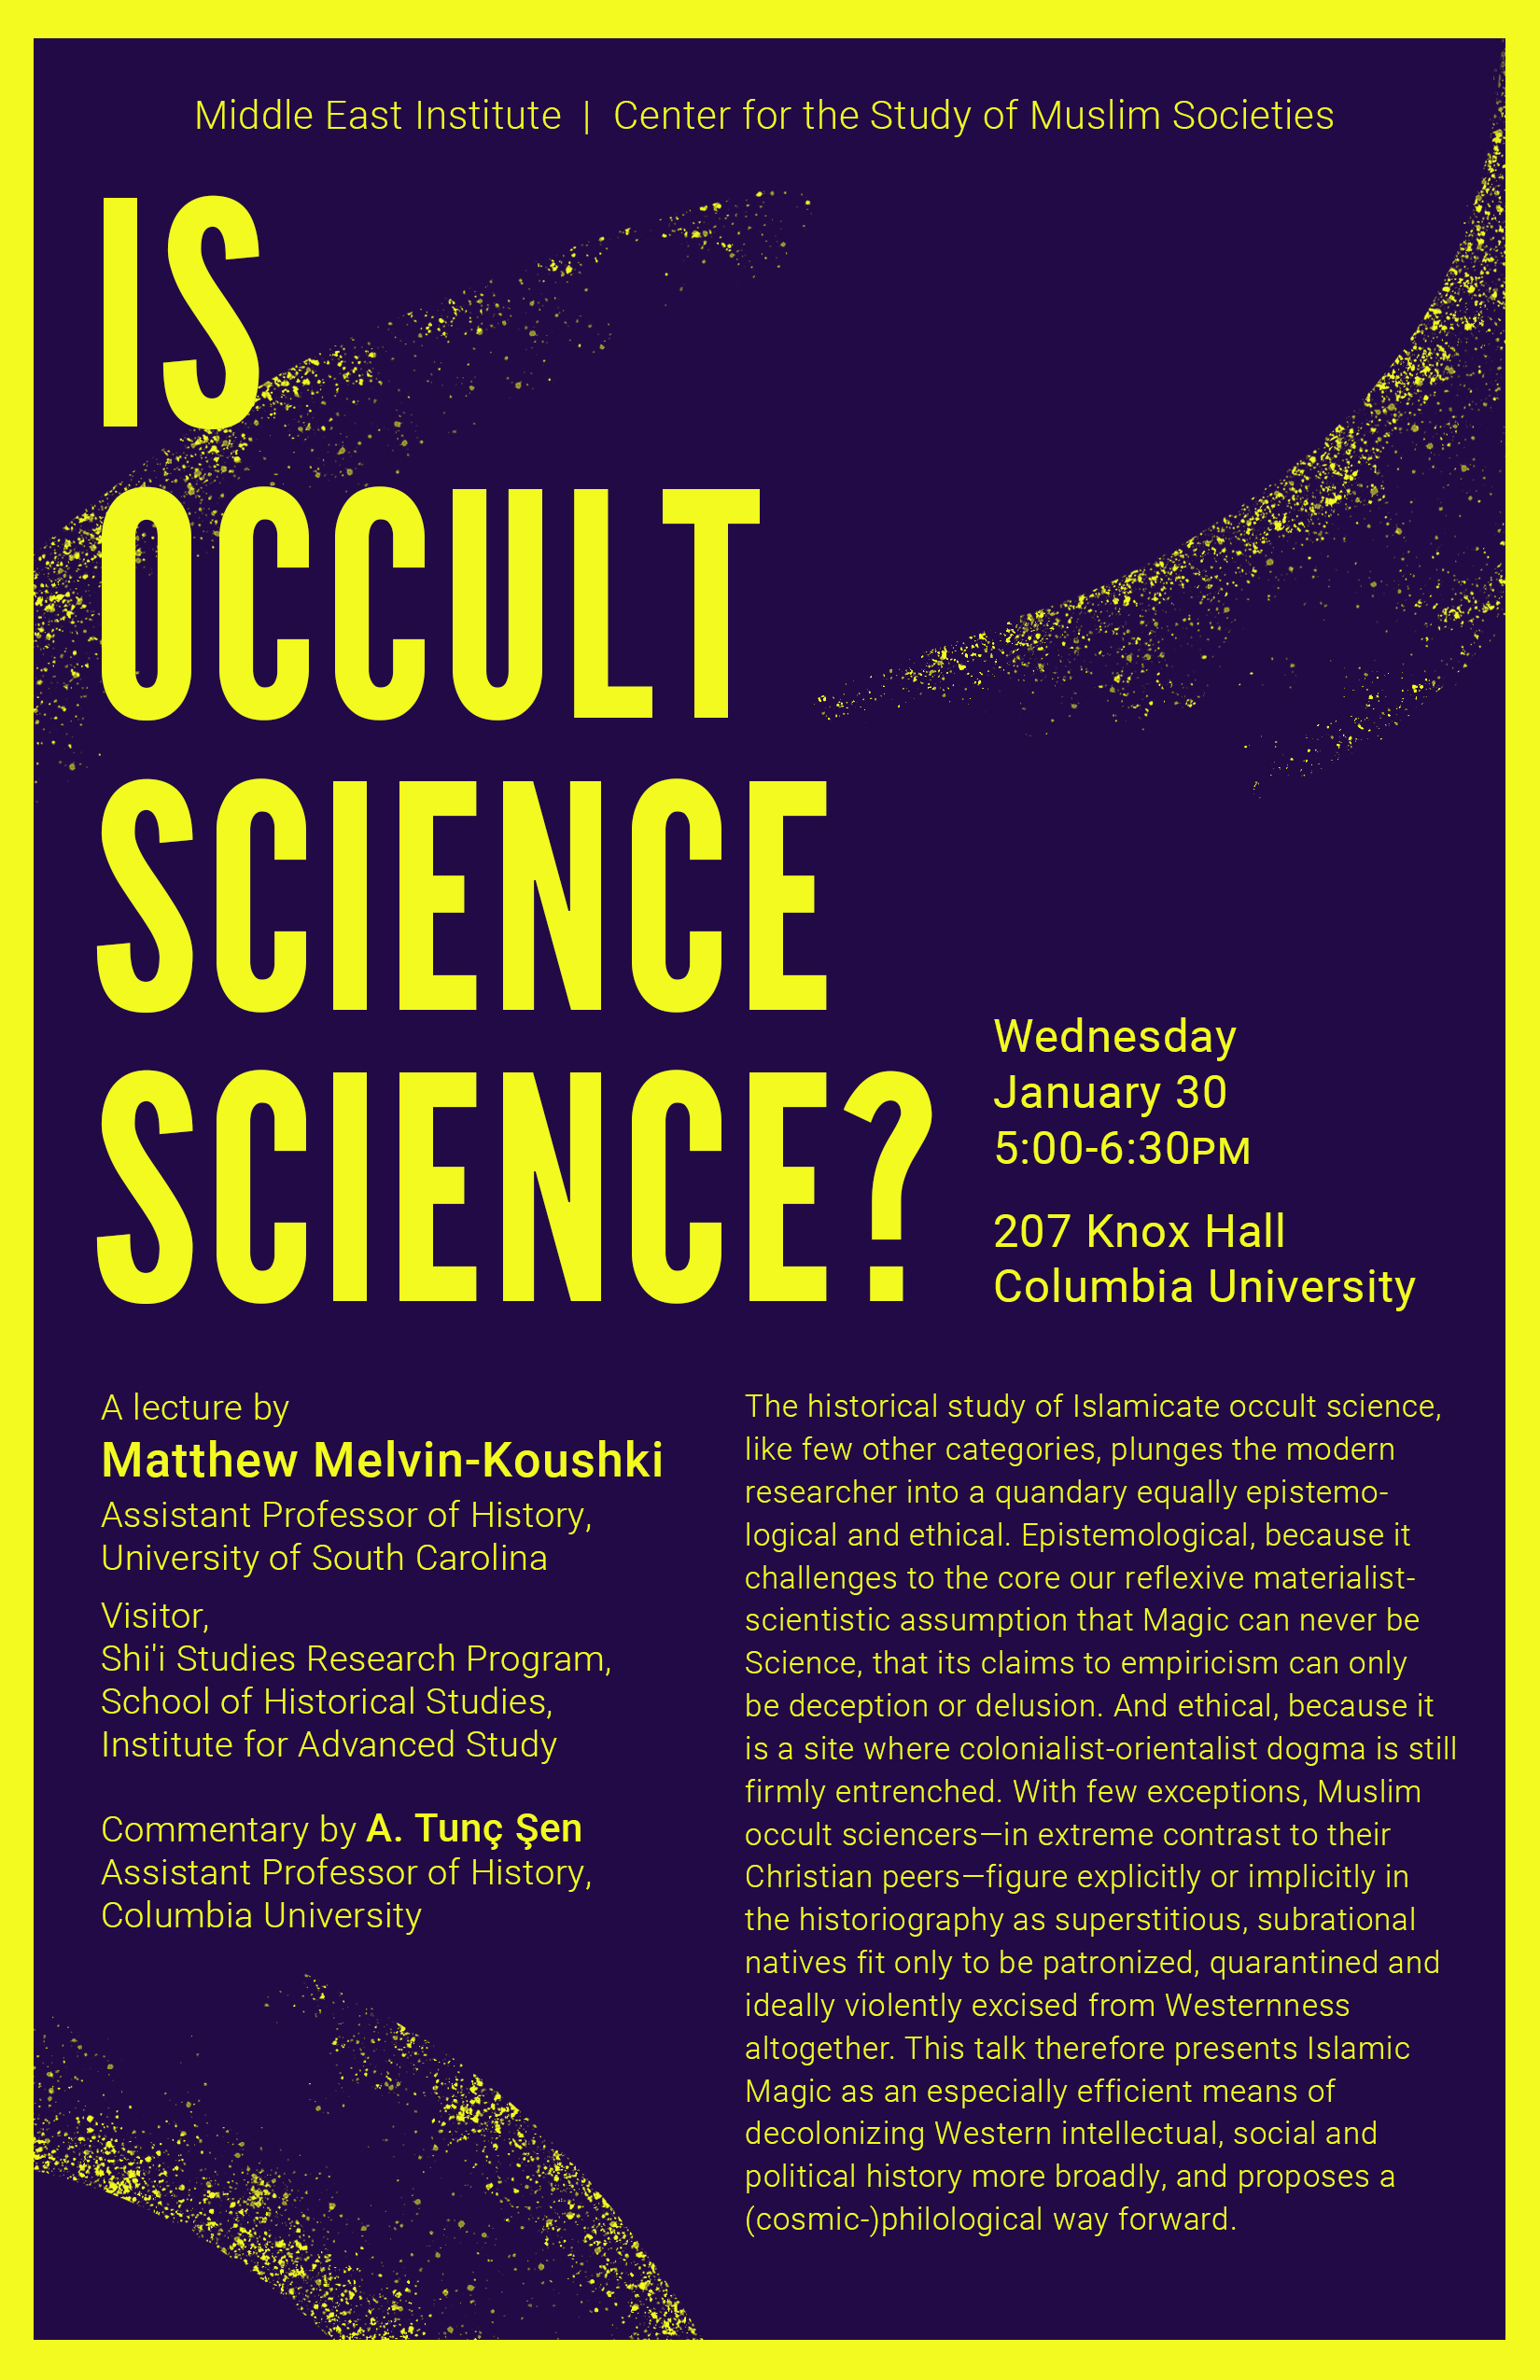 OCCULT SCIENCE 01 14 2019.png